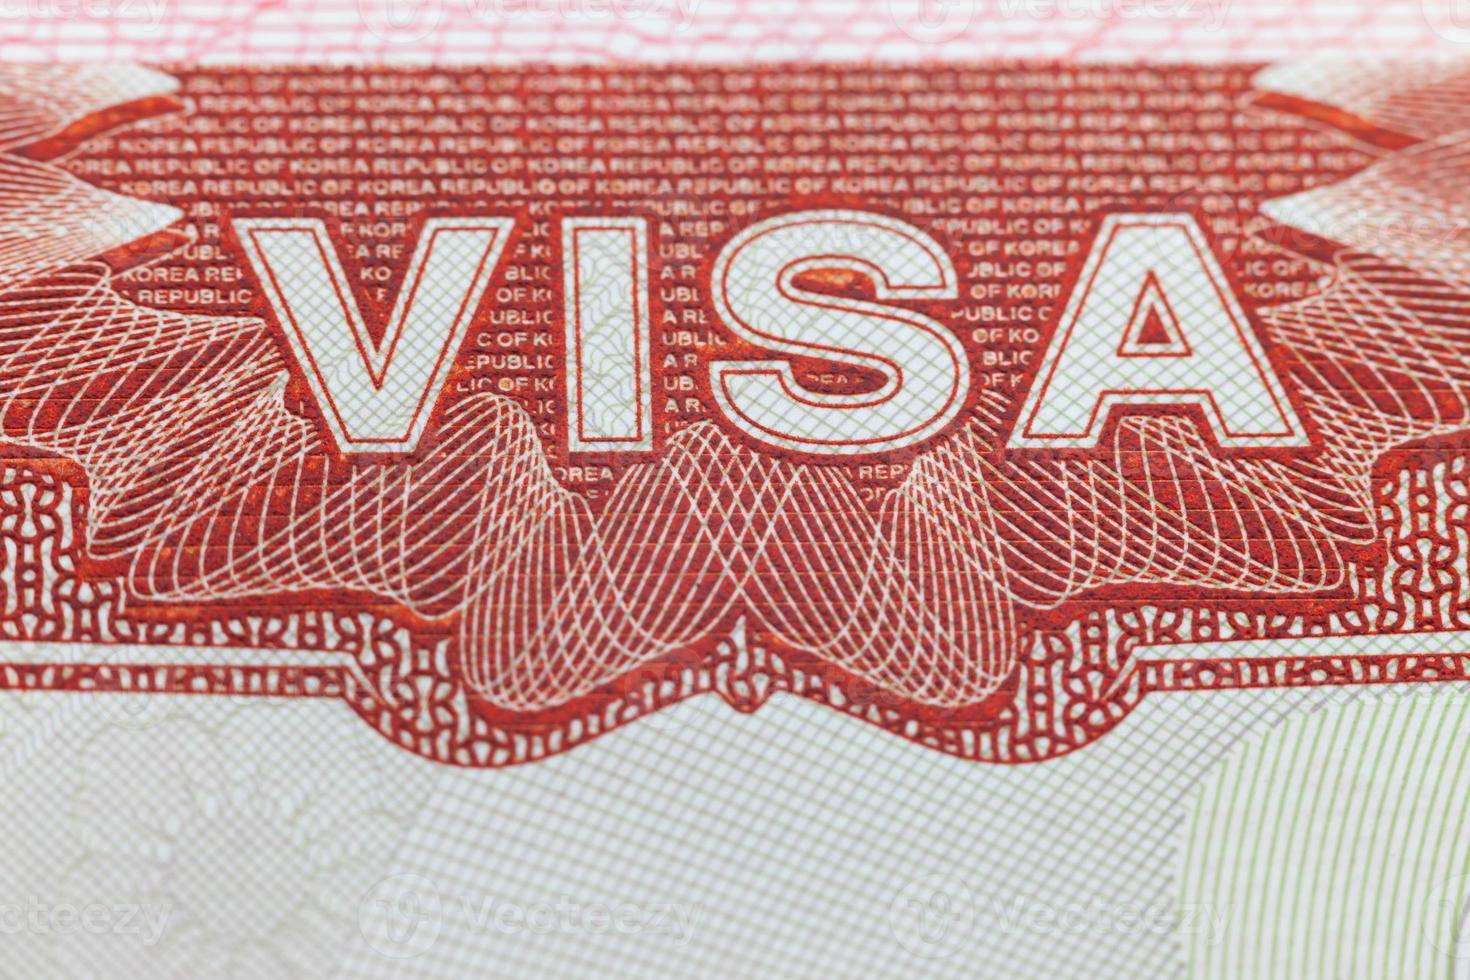 Foreign Visa in a passport  page  -  enjoy travel background photo